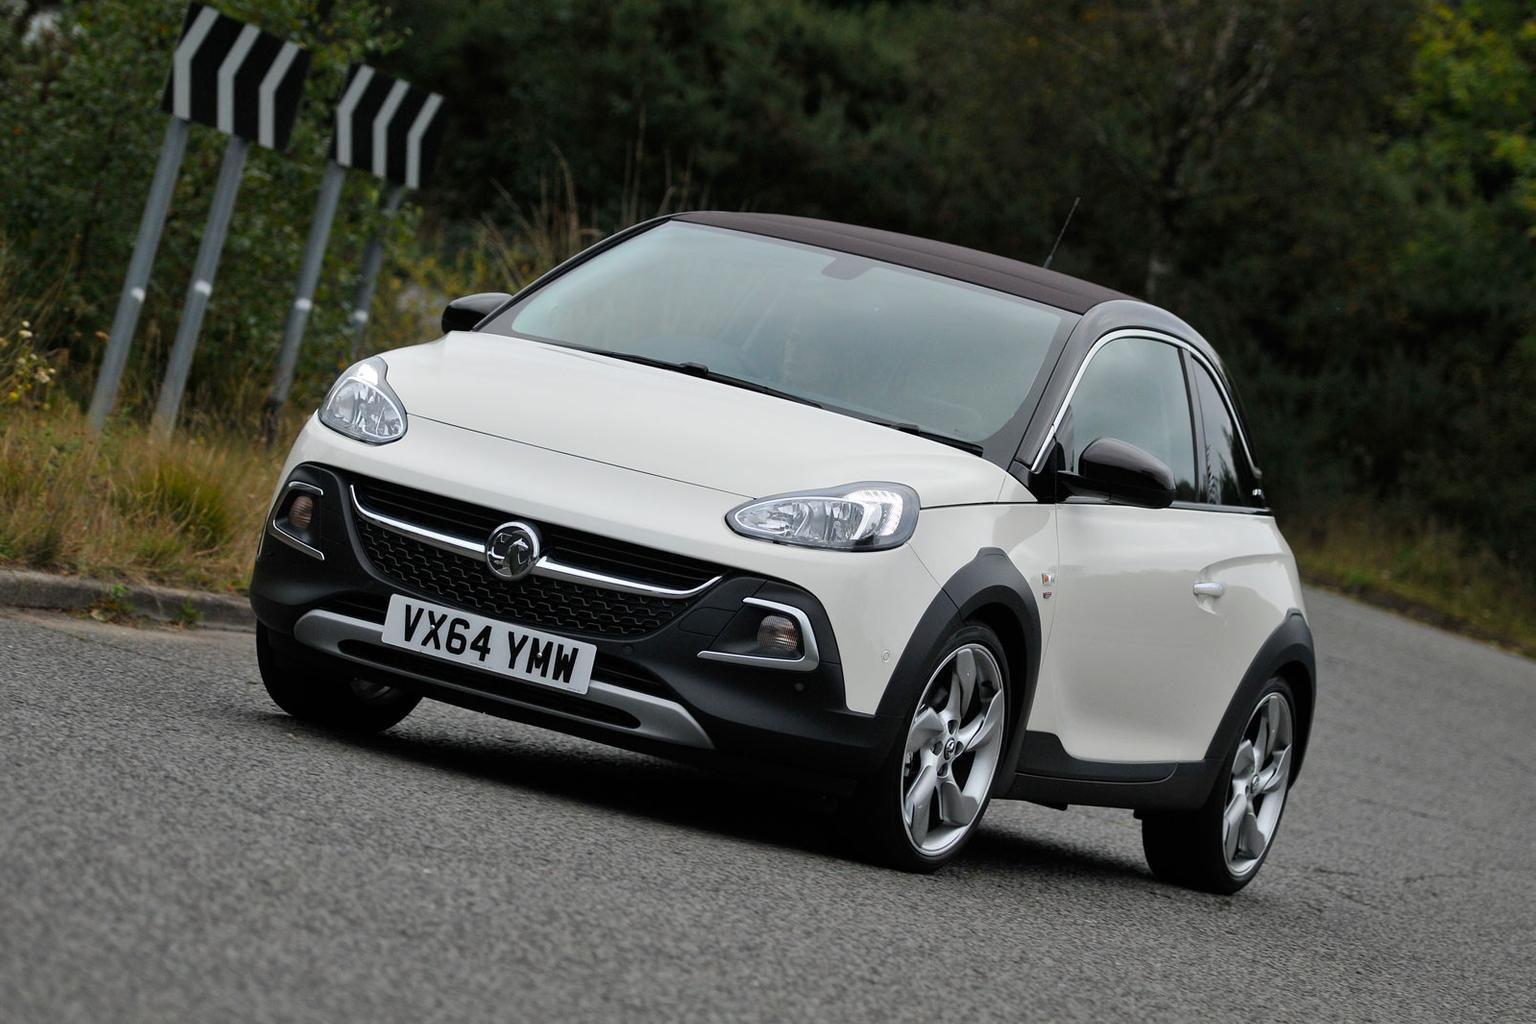 2015 Vauxhall Adam Rocks Air review